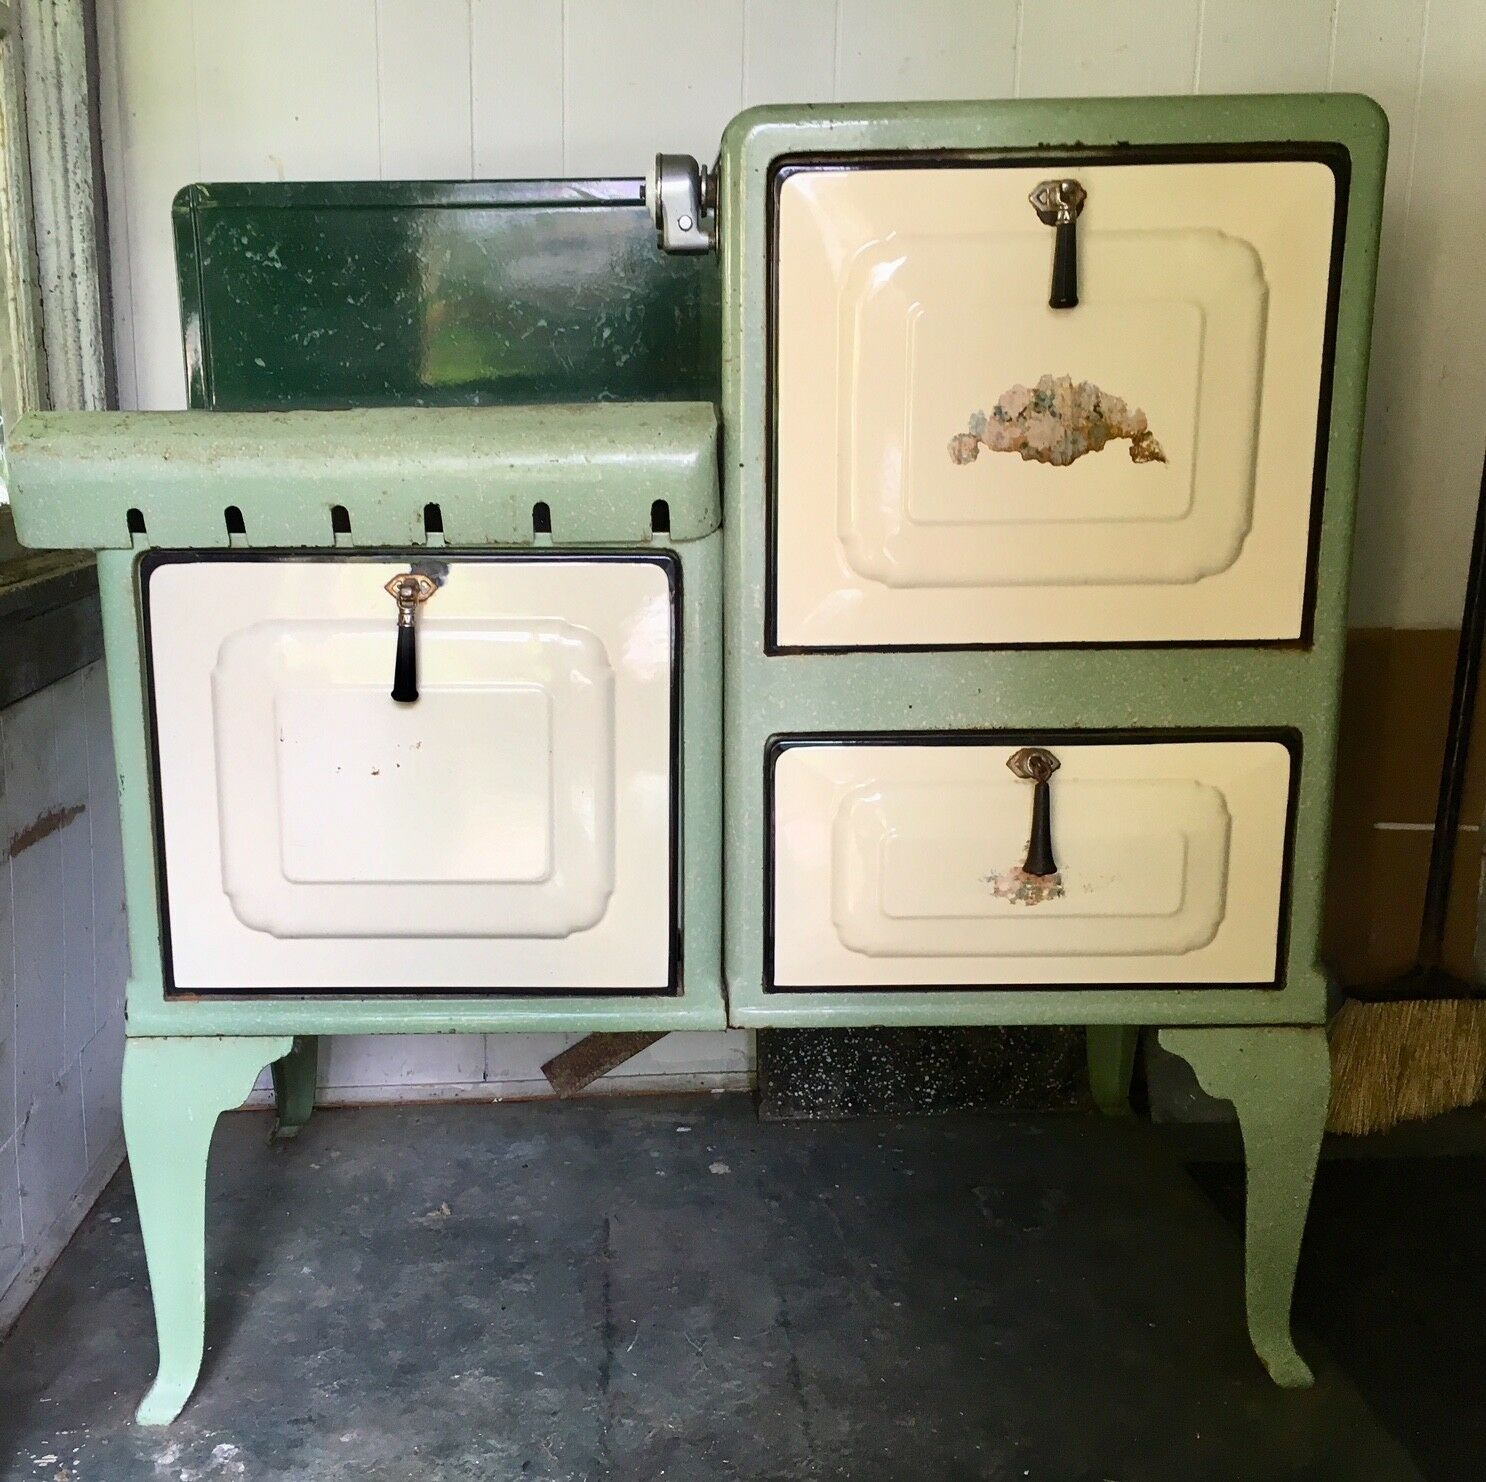 1928 Gas Stove Oven Magic Chef? Works Project Piece